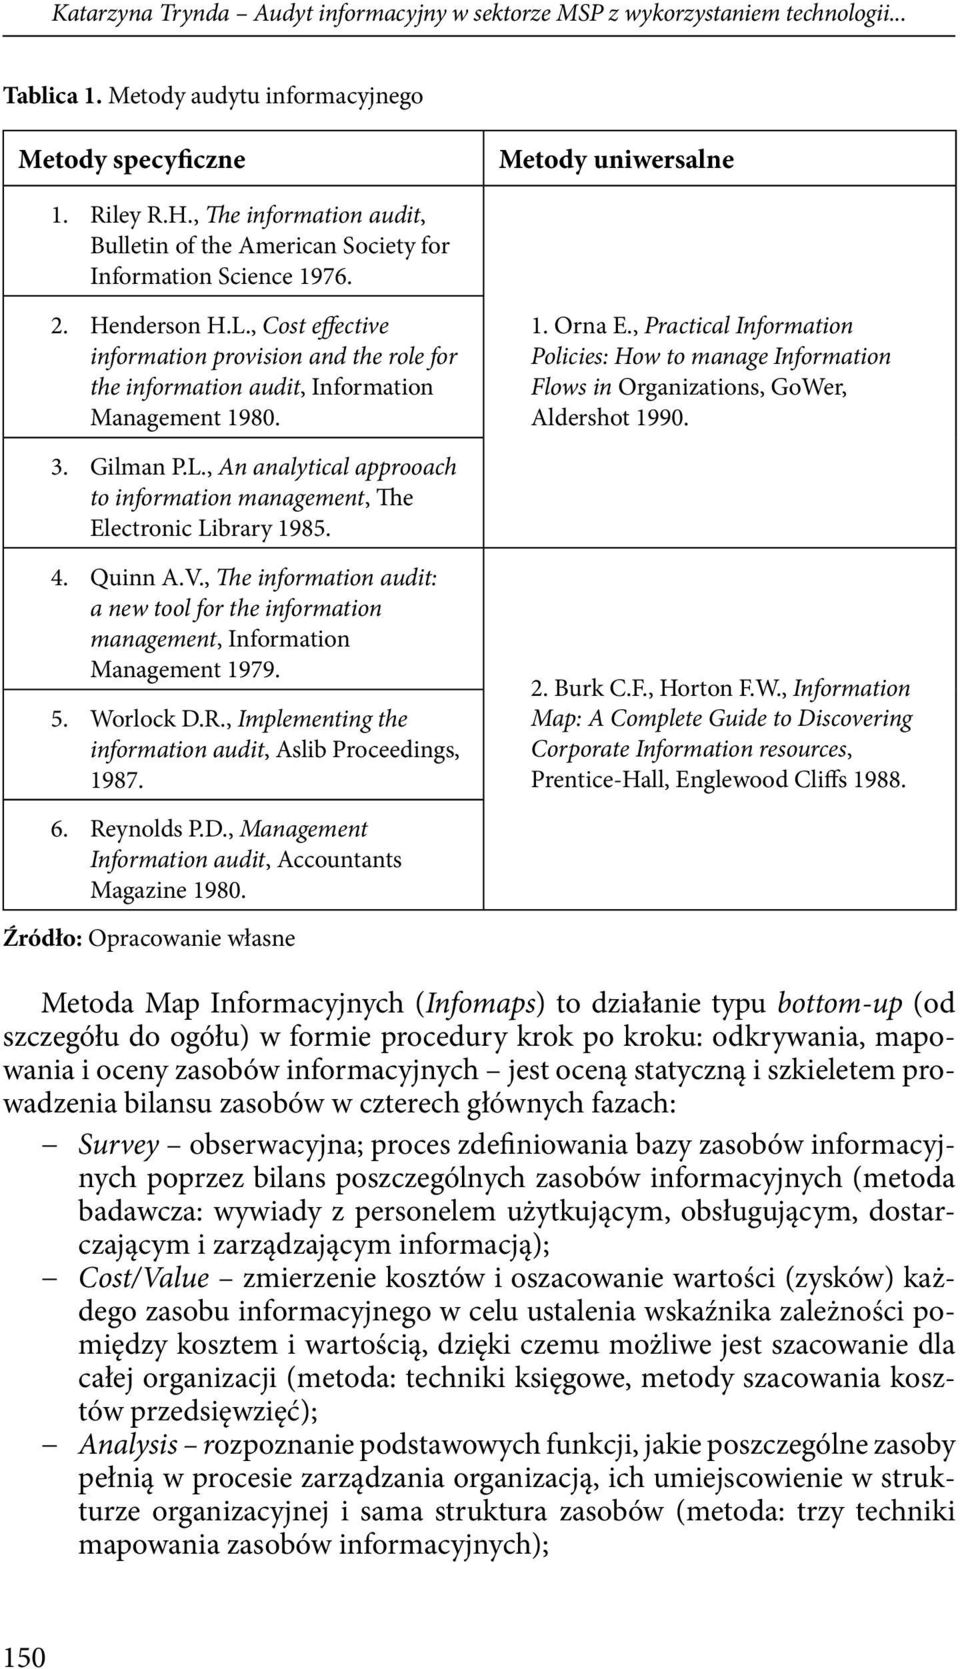 , Cost effective information provision and the role for the information audit, Information Management 1980. 1. Orna E.